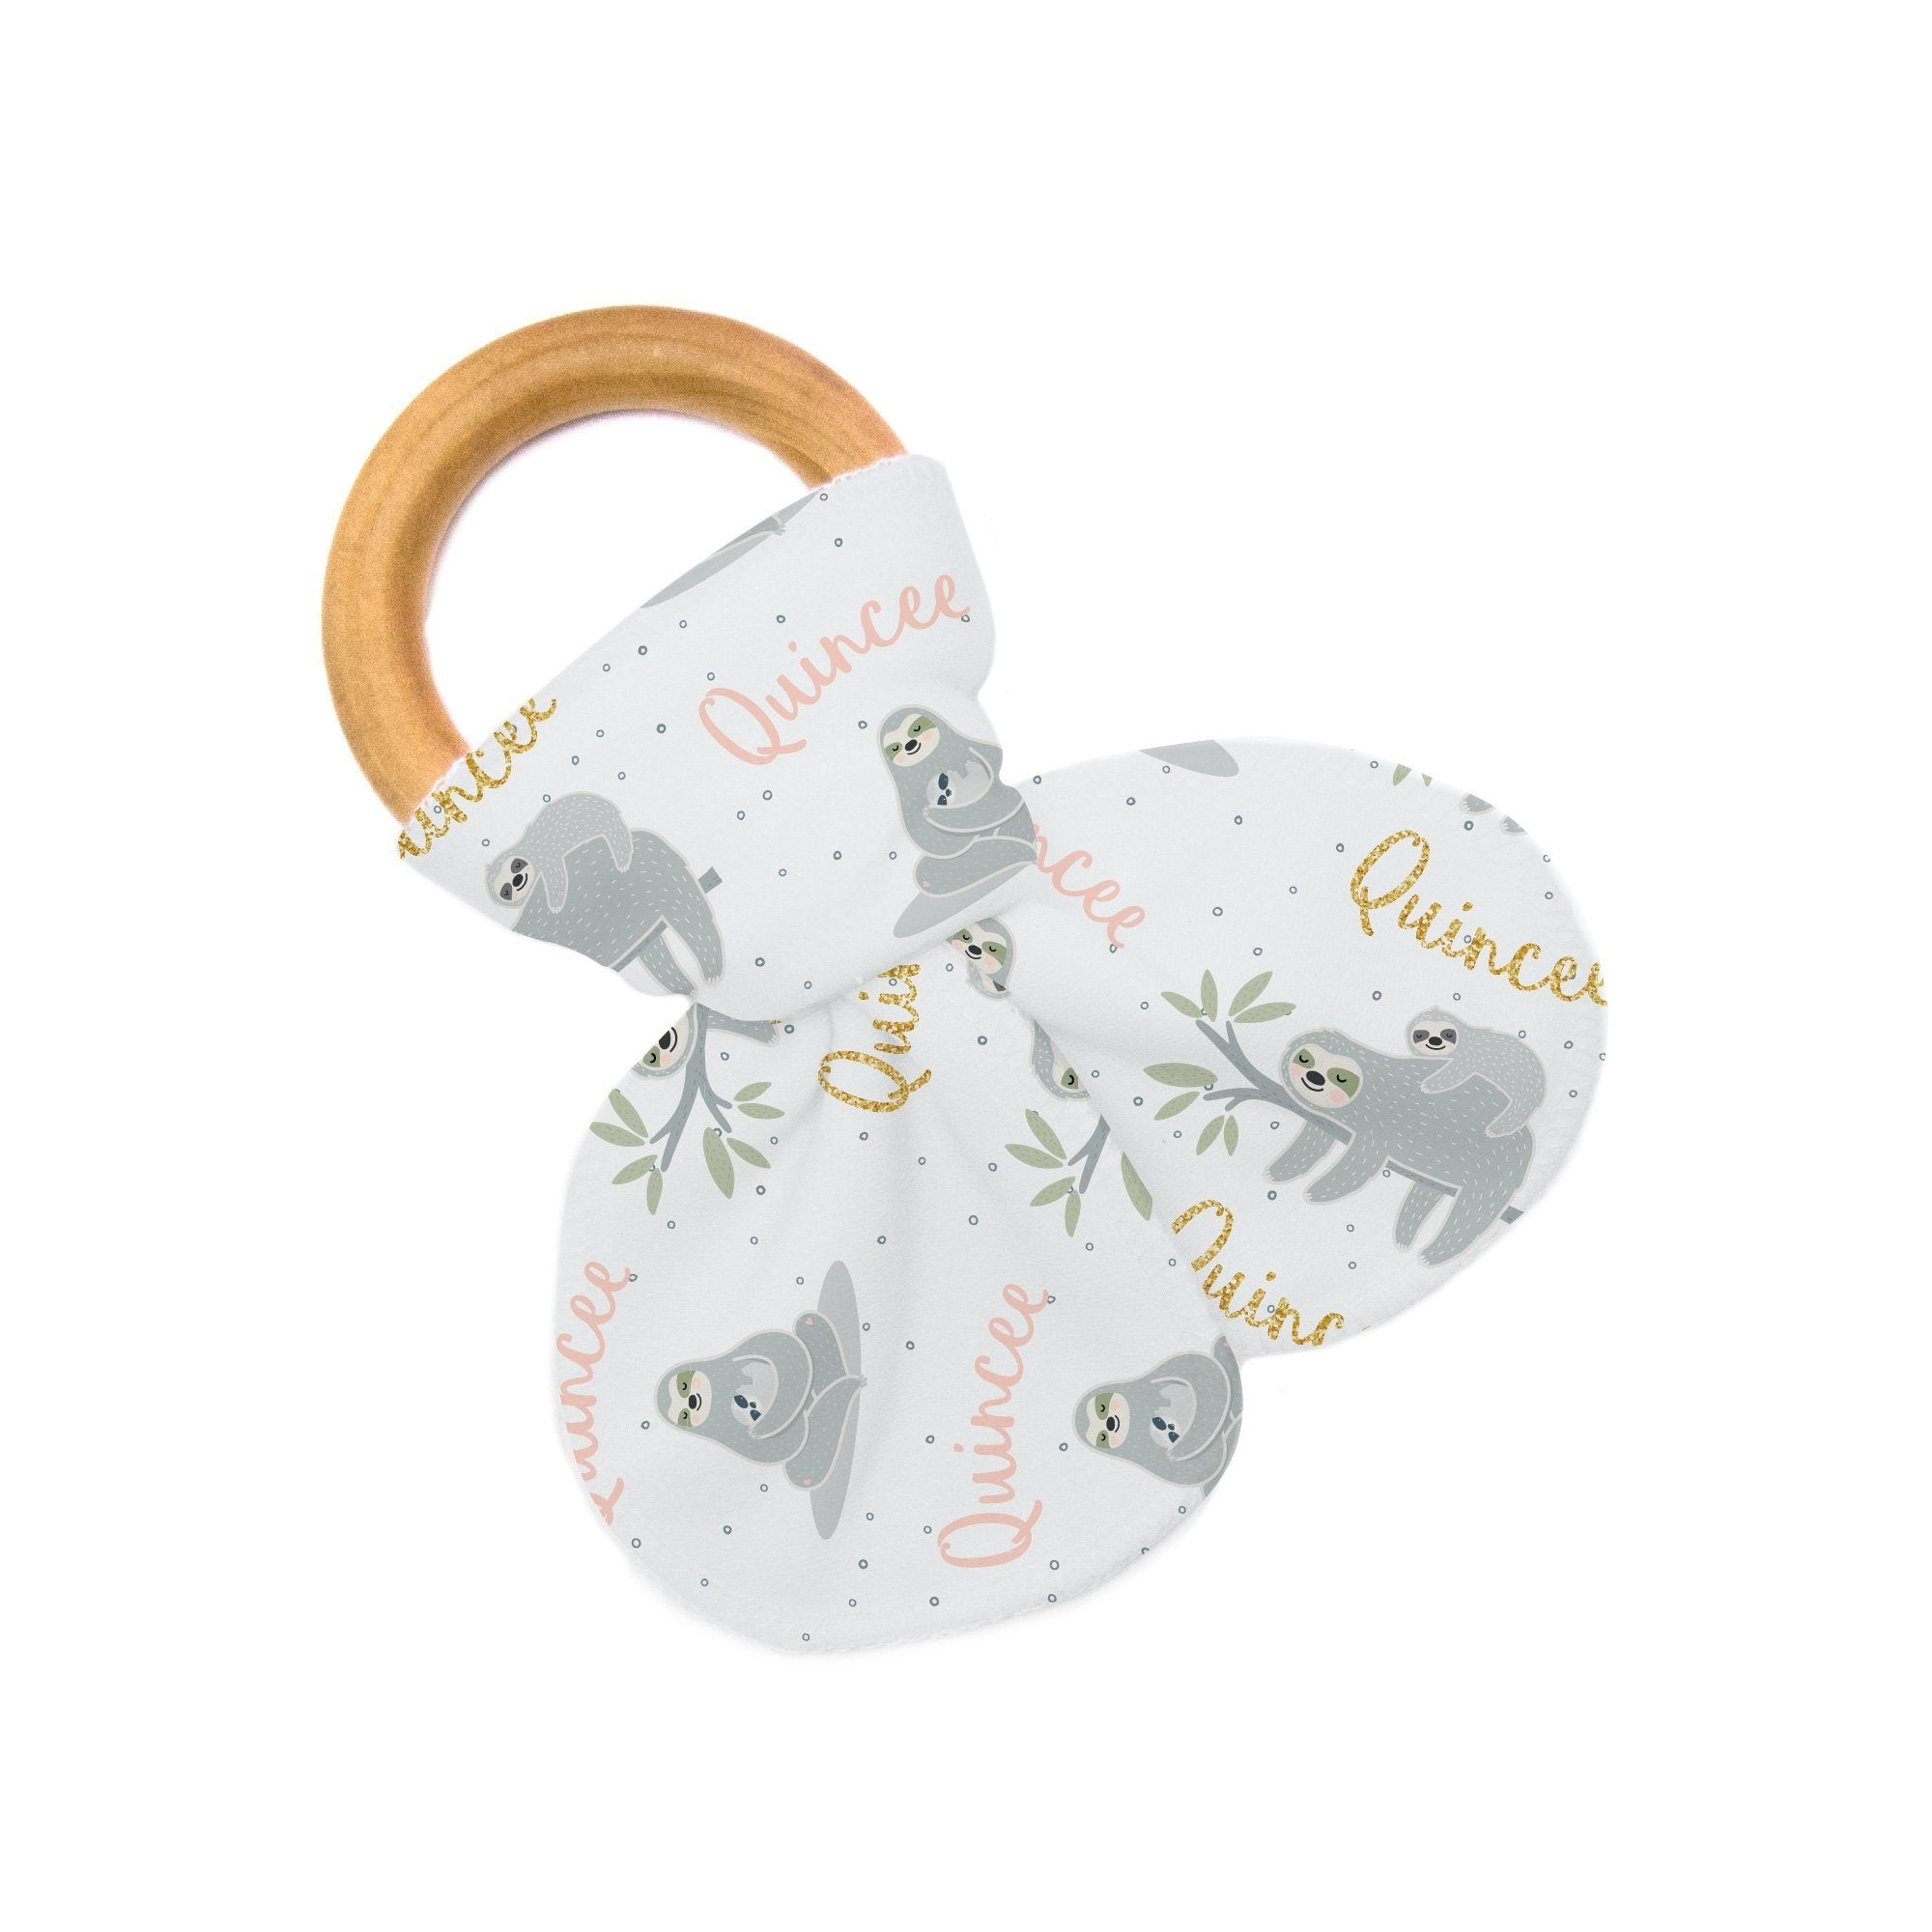 Quincee's Mama Sloth | Teether